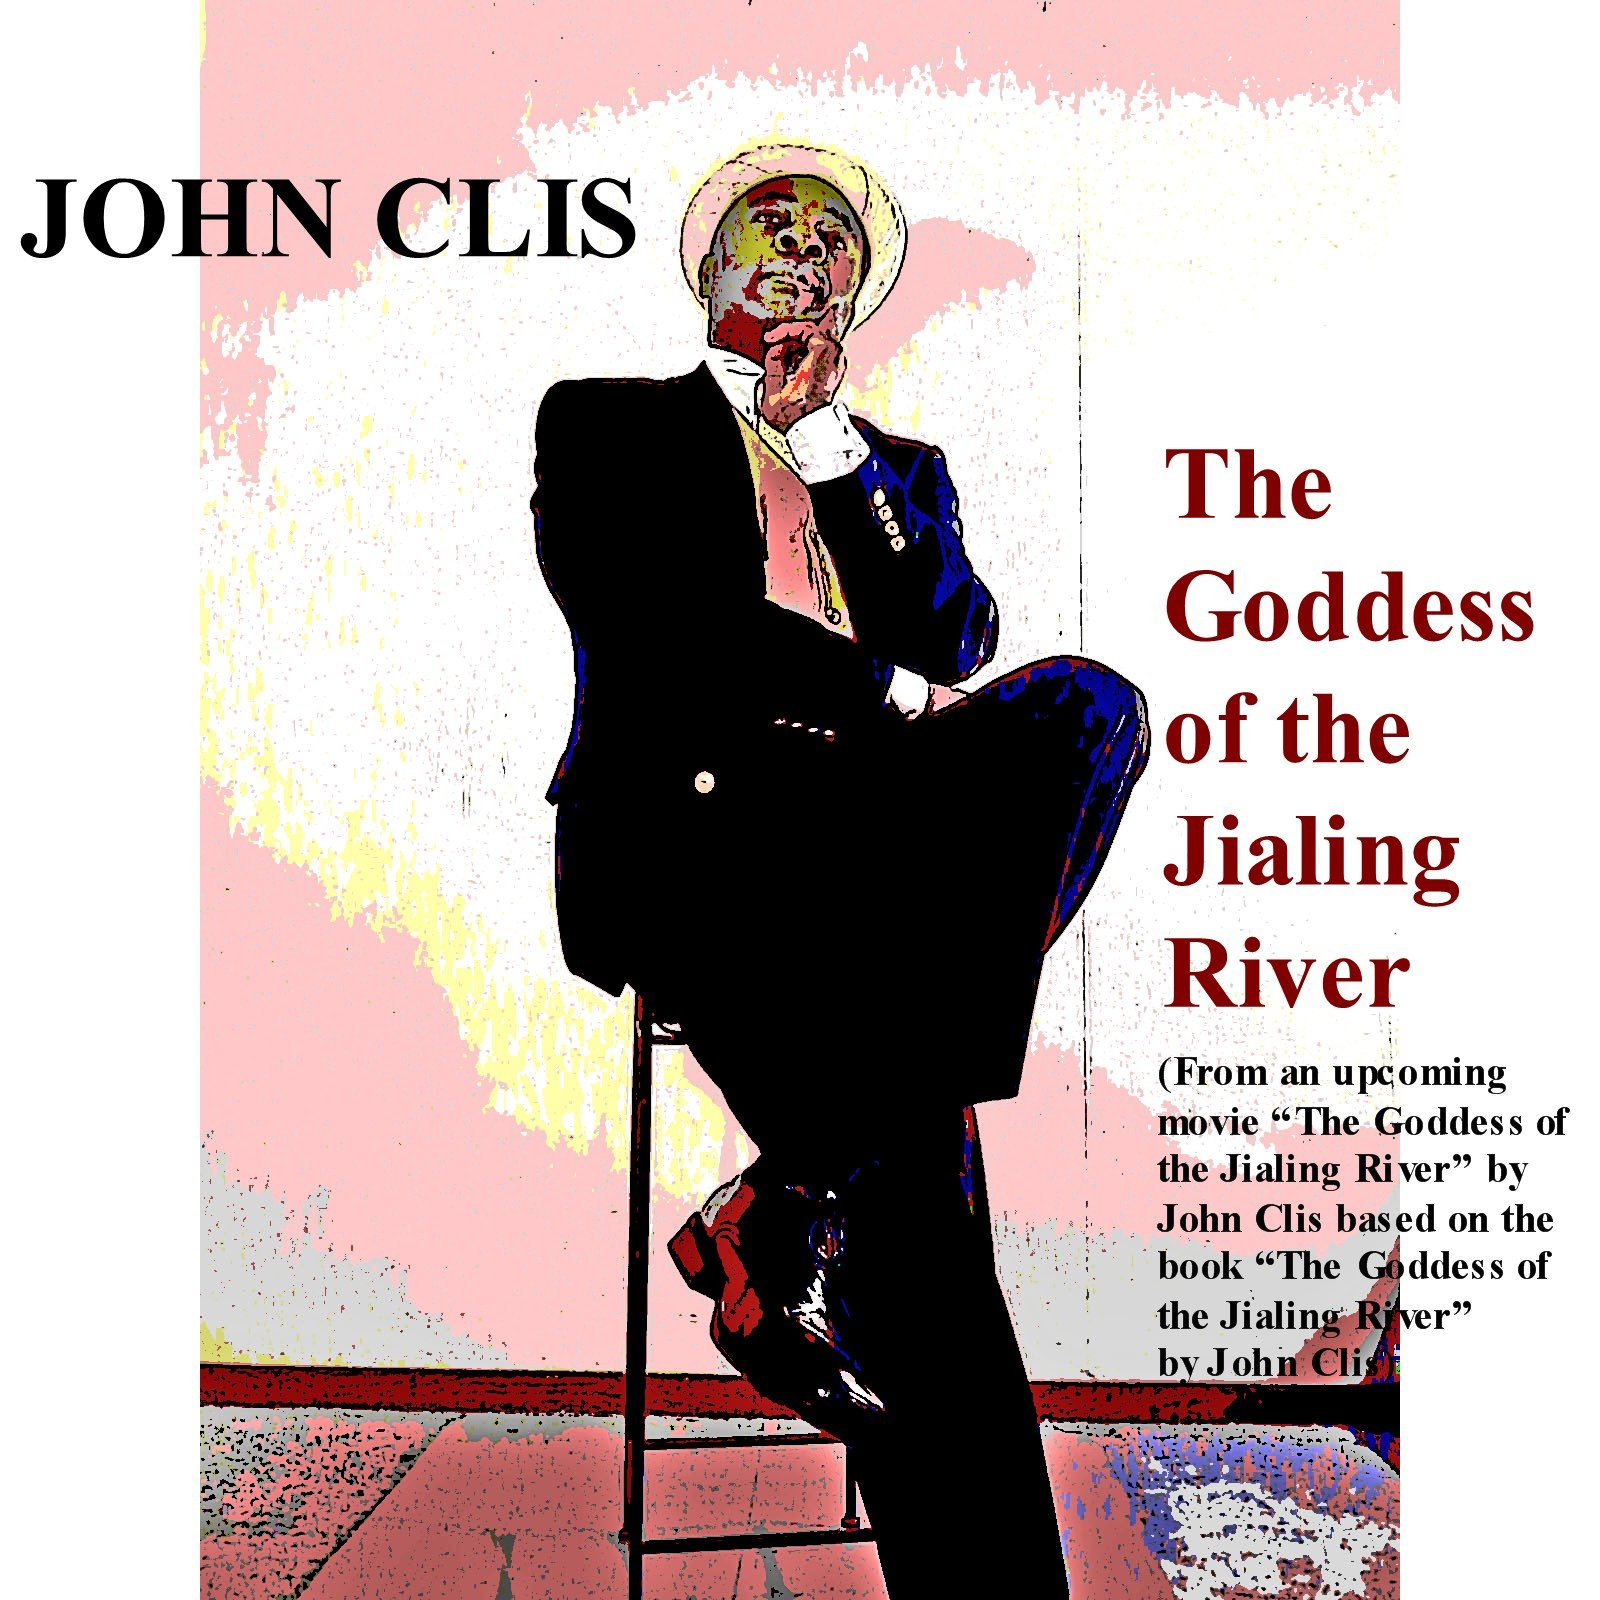 https://0201.nccdn.net/1_2/000/000/09d/136/John-Clis---The-Goddess-of-the-Jialing-River---Pic-1a.jpg